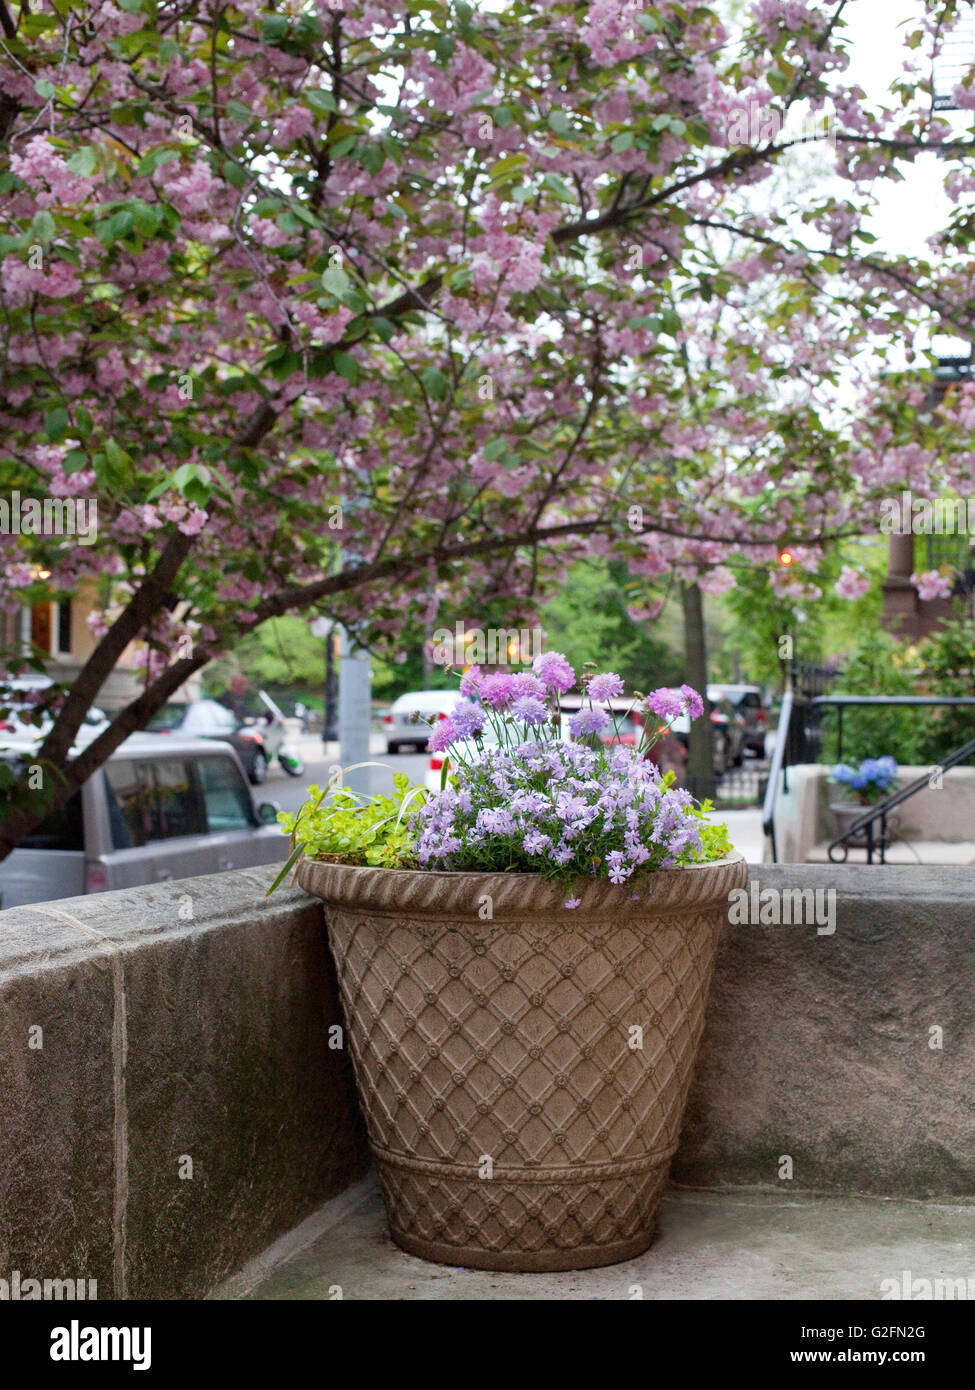 brooklyn spring morning dusk sunrise tee trees flowers bloom blossoms city nature urban homes houses brownstone - Stock Image